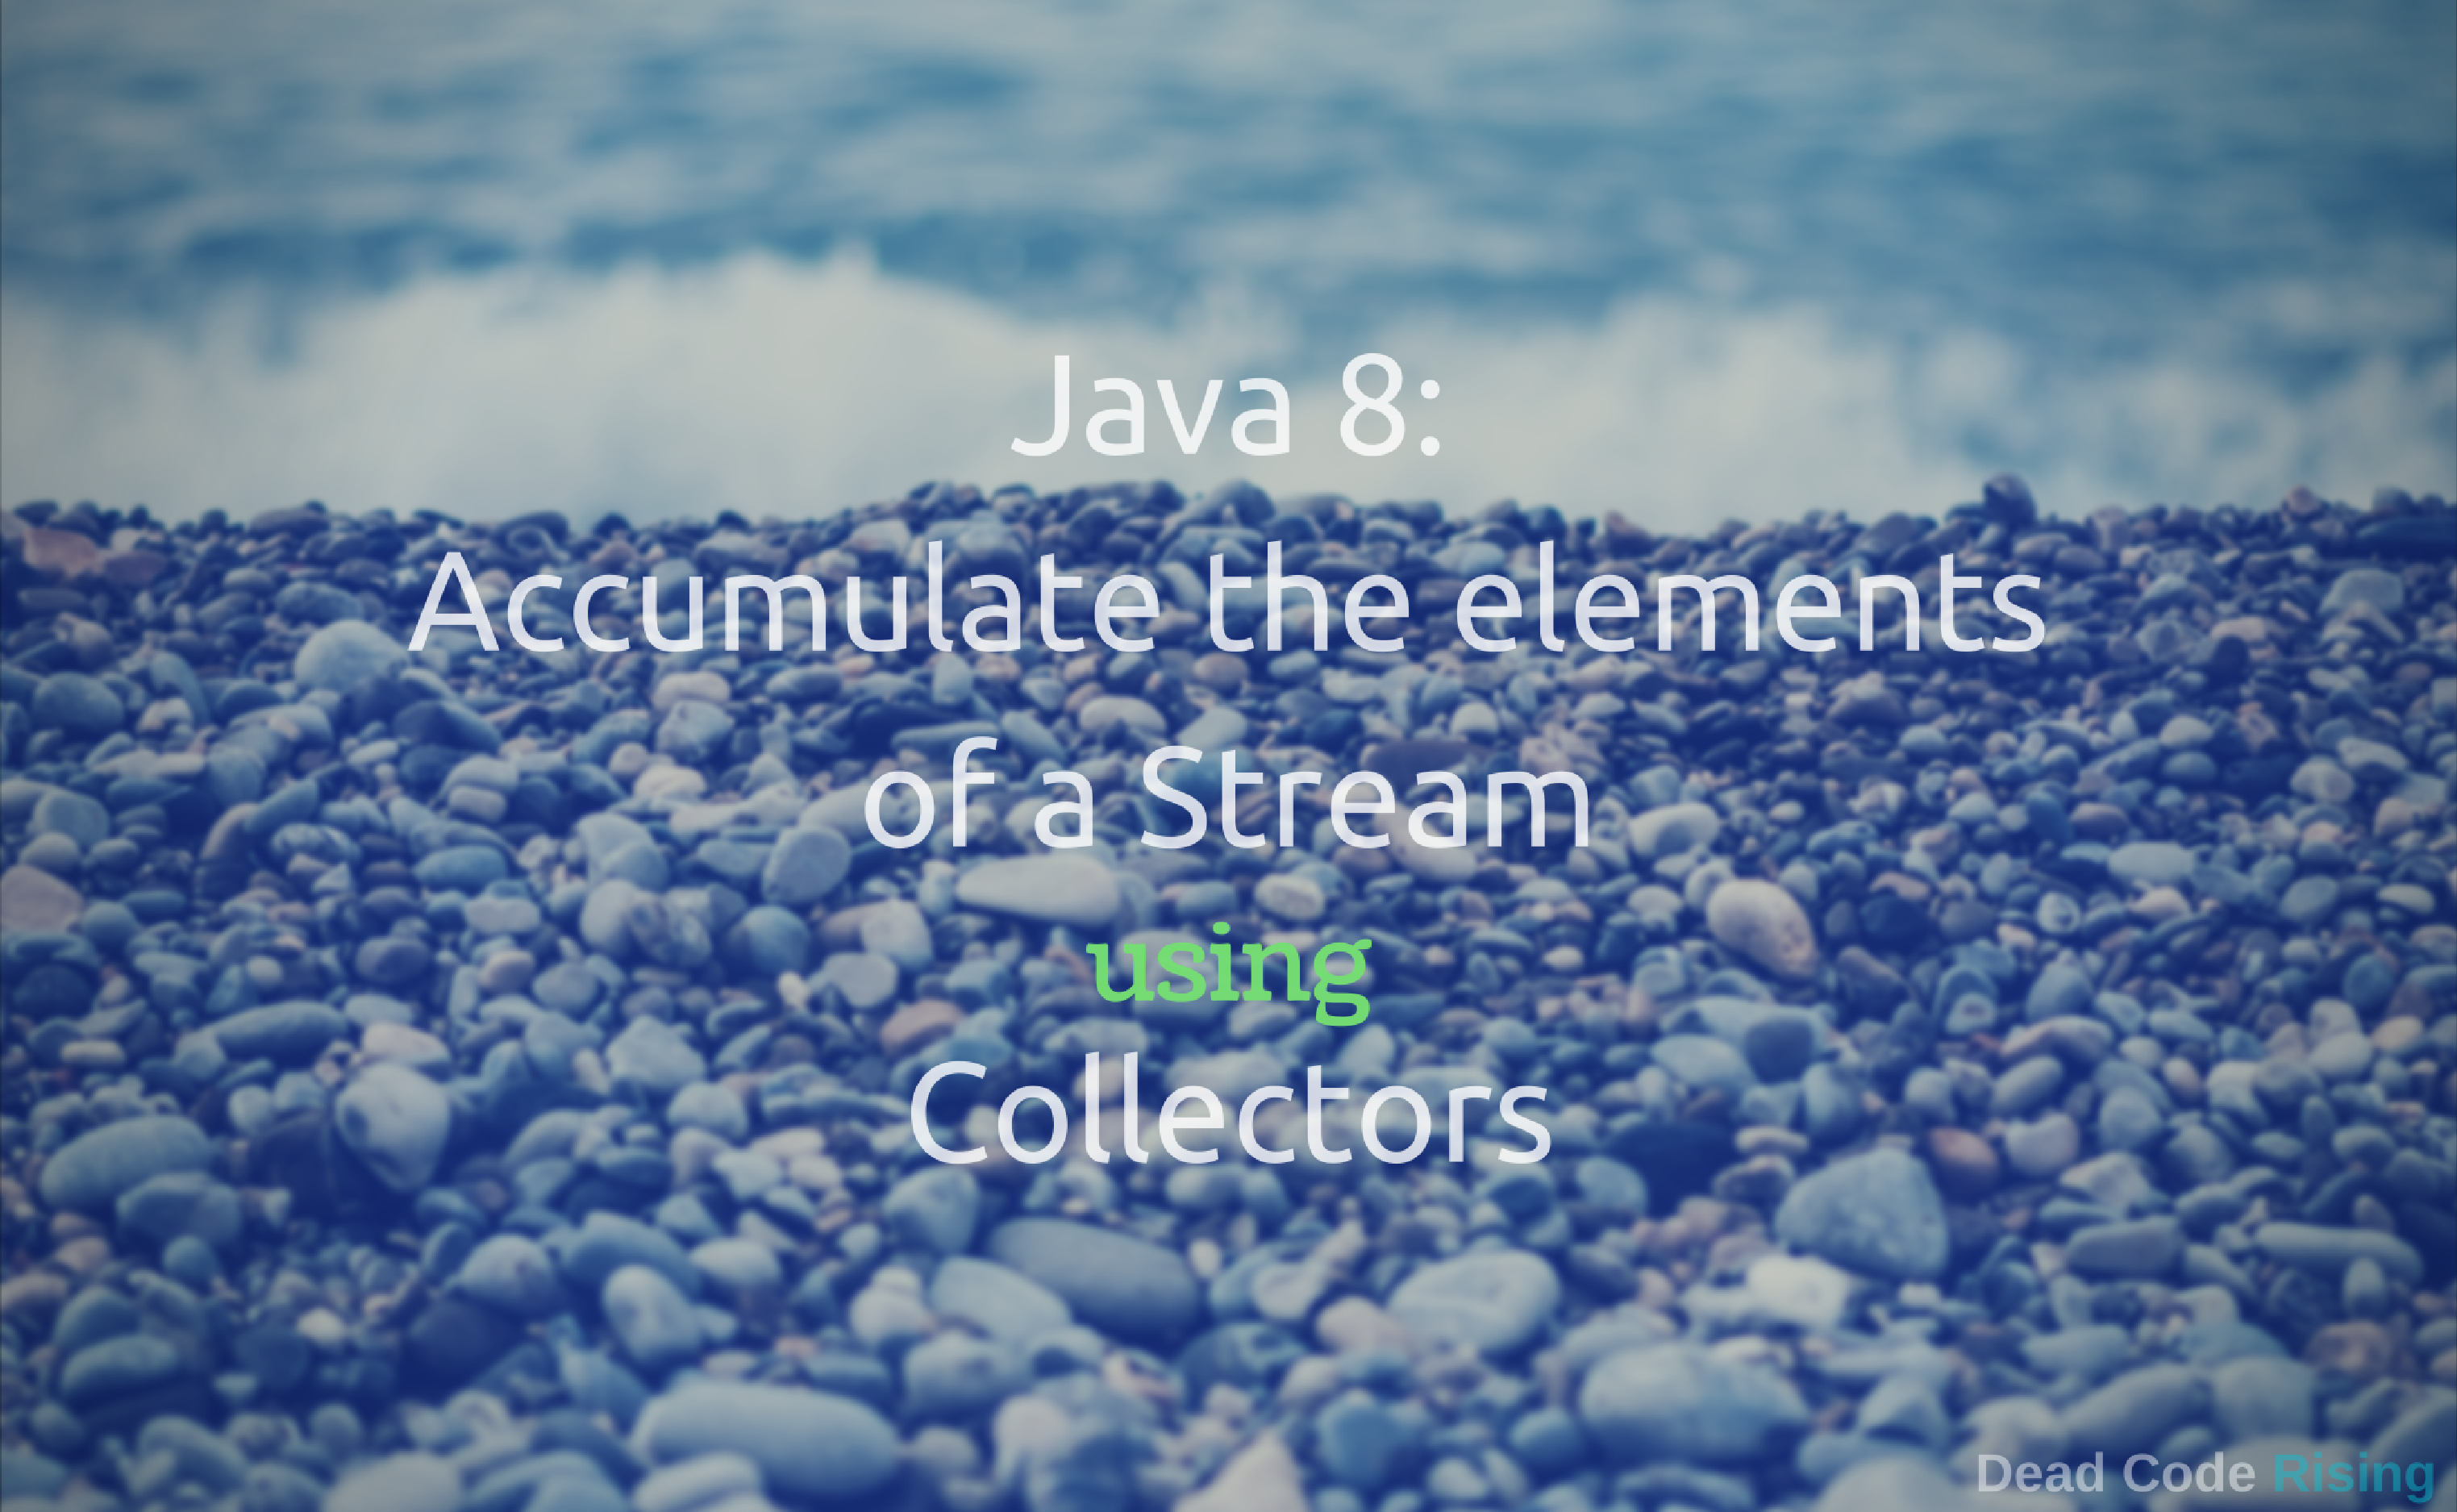 Java 8: Accumulate the elements of a Stream using Collectors